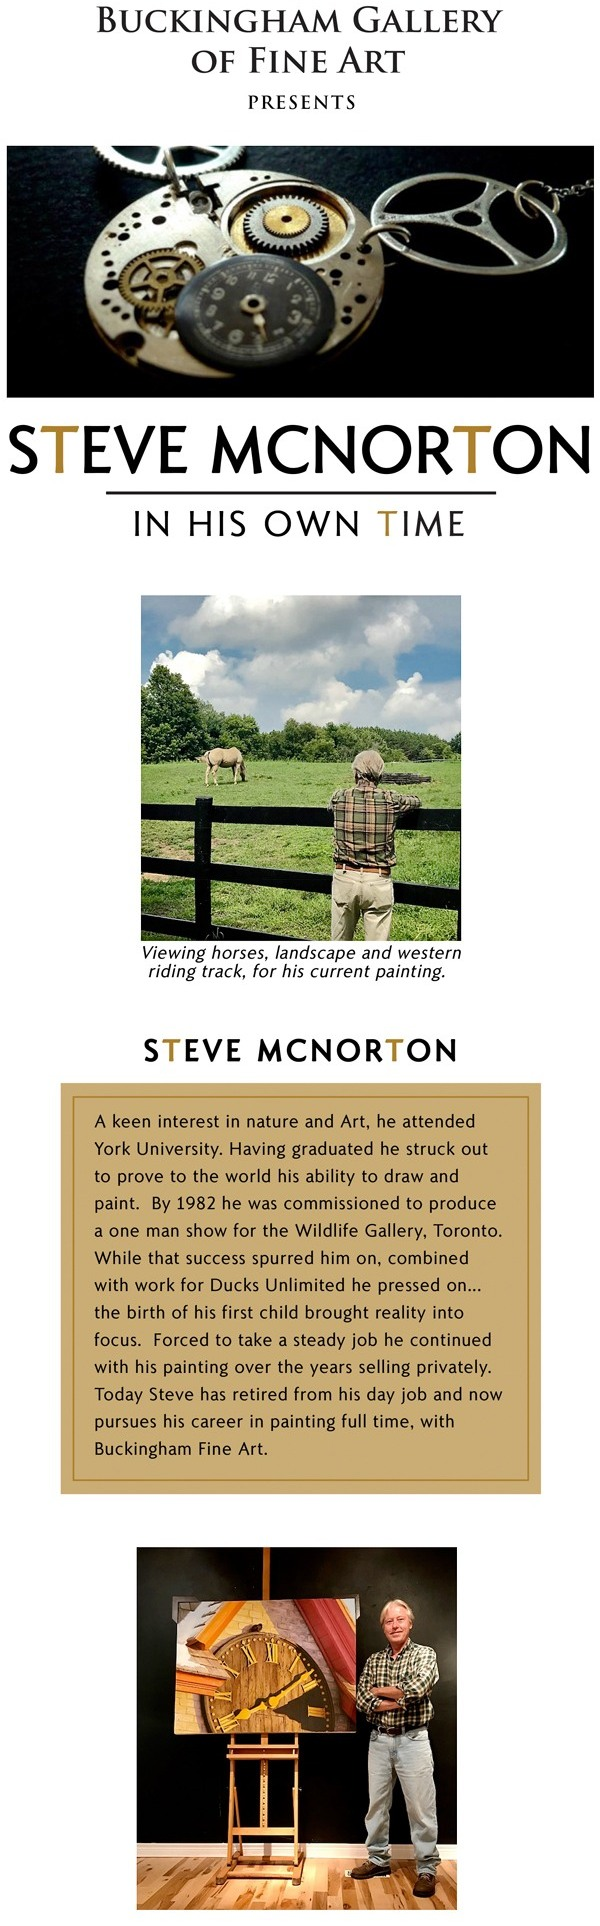 Steve McNorton - In His Own Time